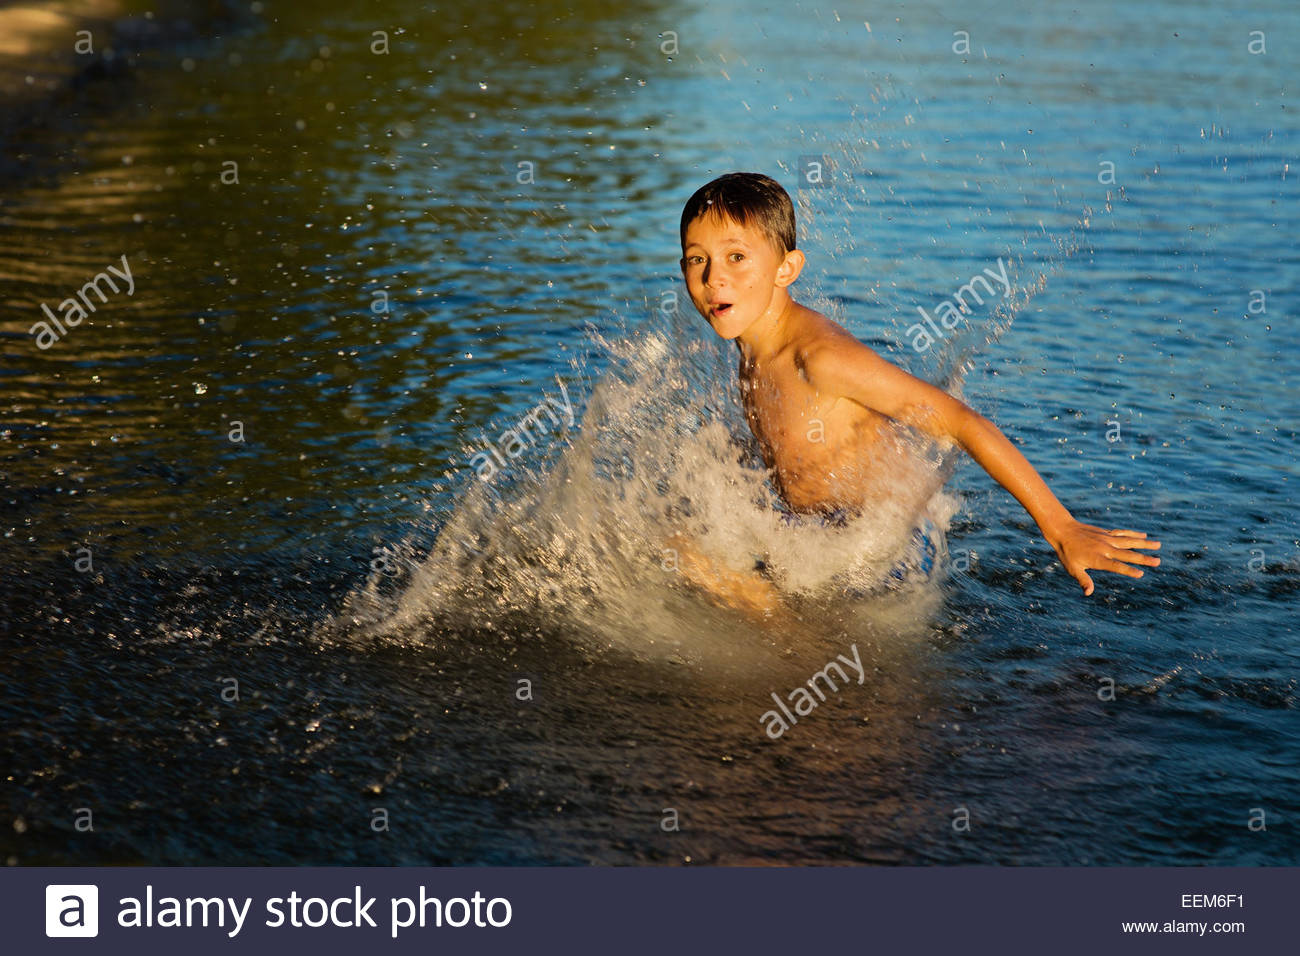 Boy playing in water - Stock Image